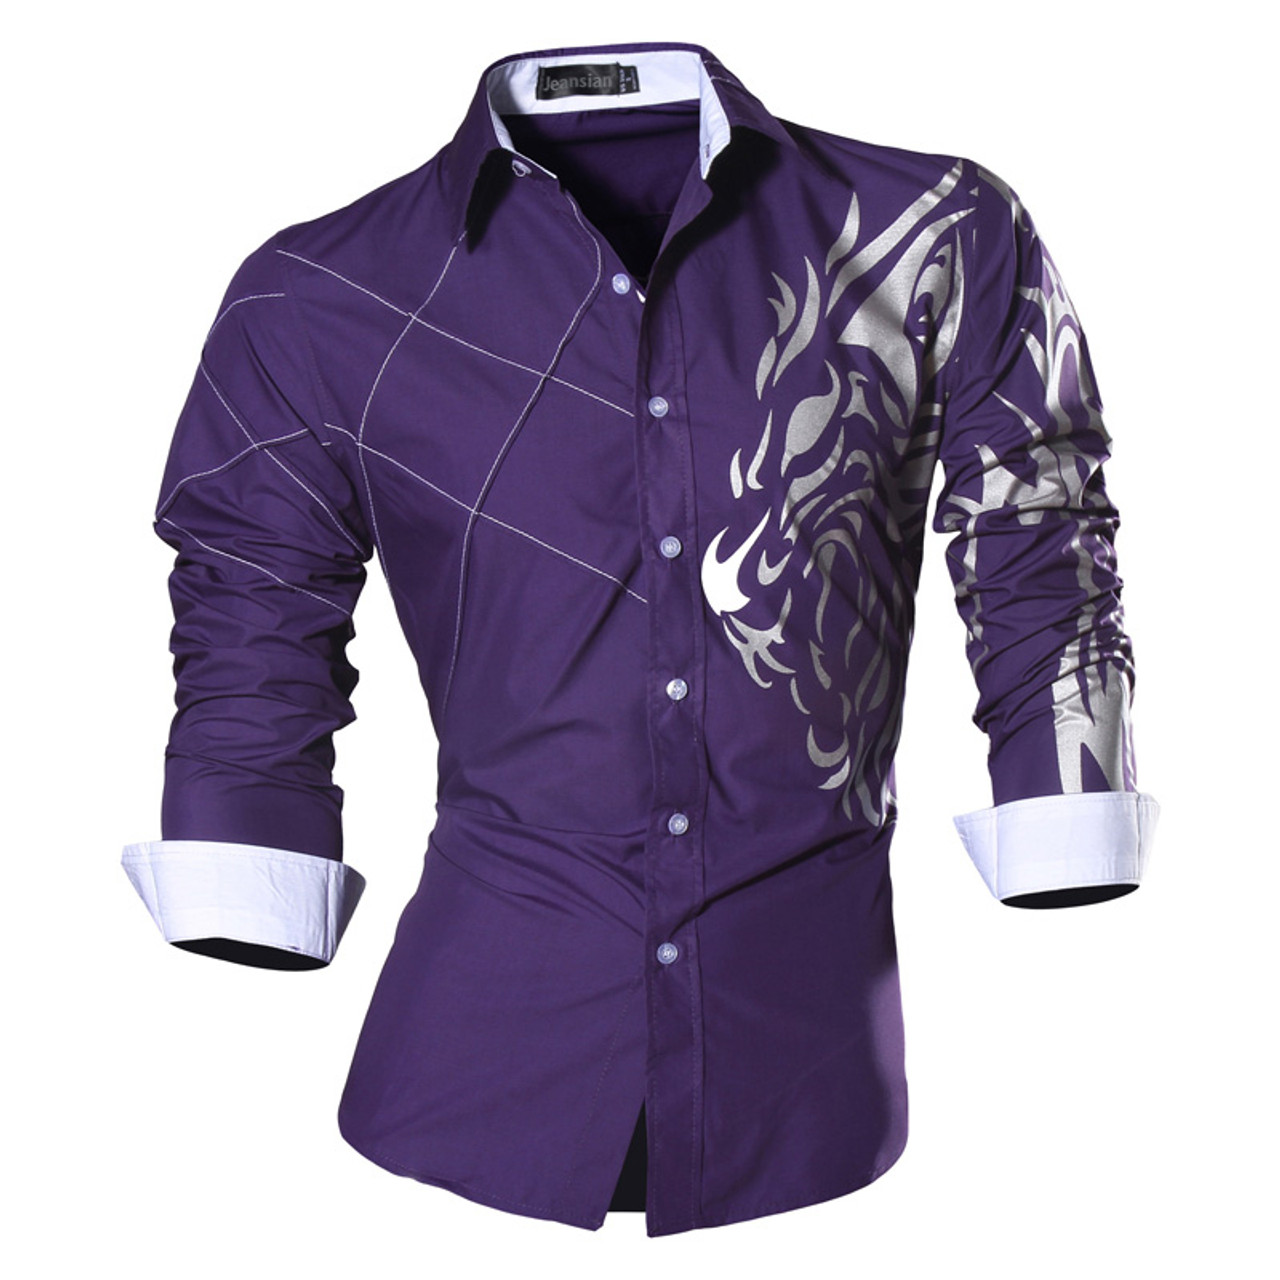 2018 spring autumn features shirts men casual jeans shirt new